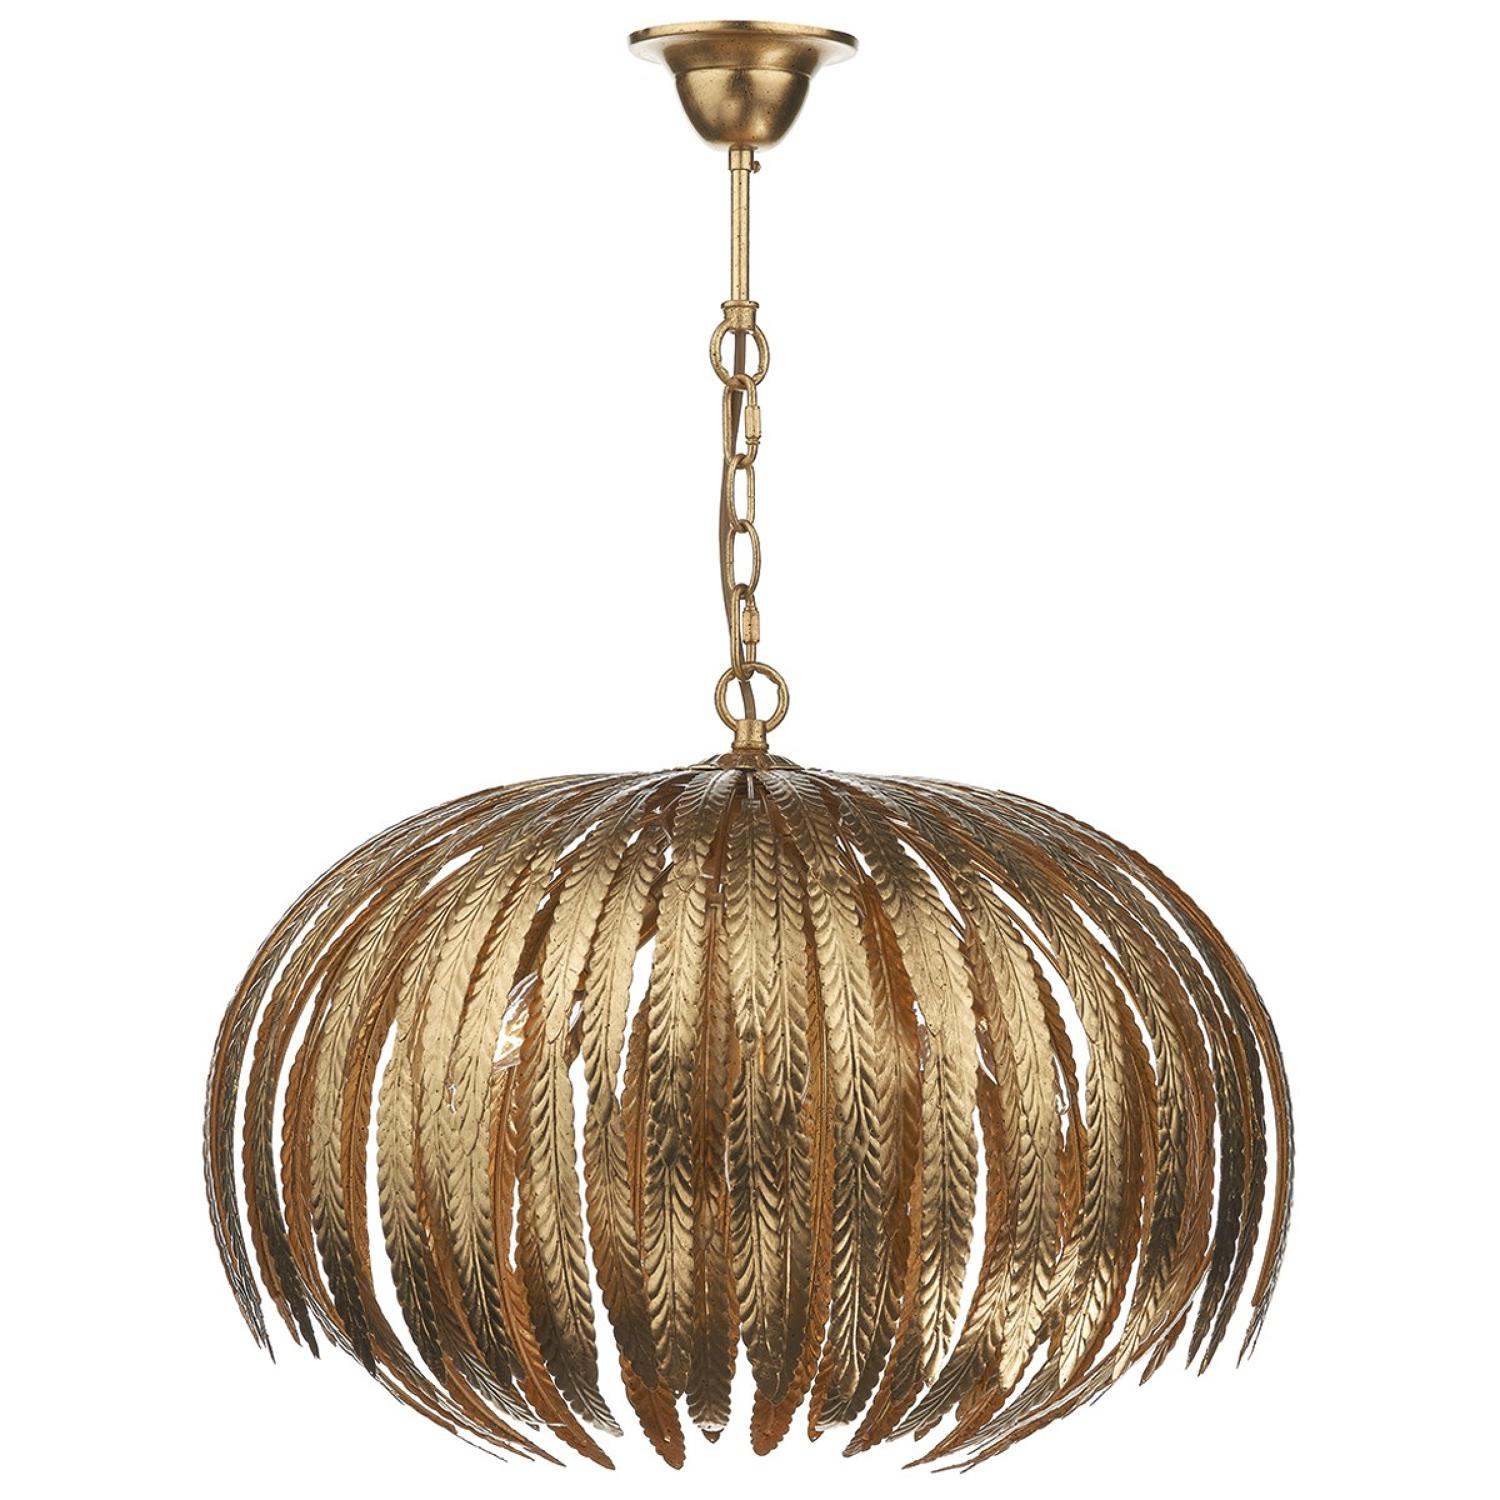 5 light pendant with hand applied gold leaf finish